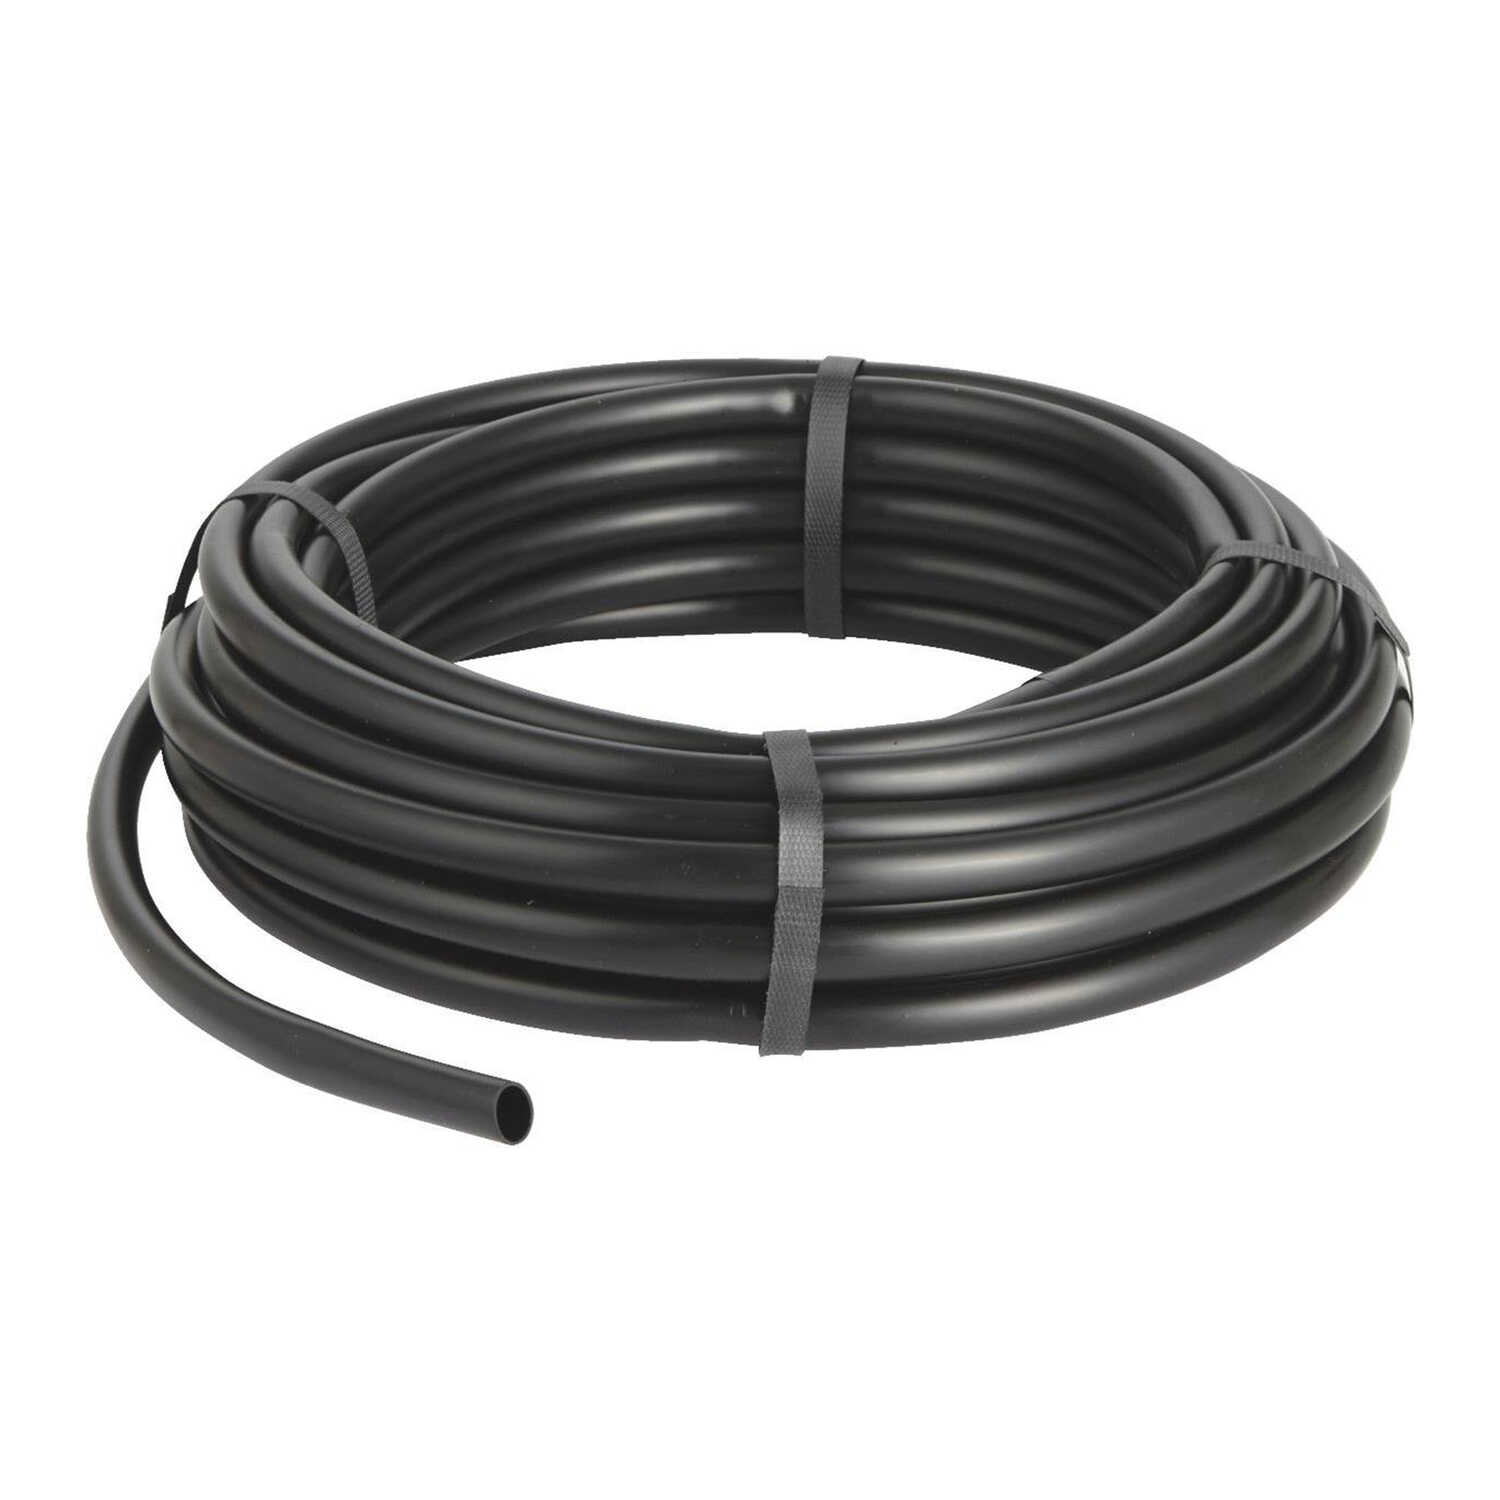 Raindrip  Polyethylene  Drip Irrigation Tubing  1/2 in.  x 50 ft. L